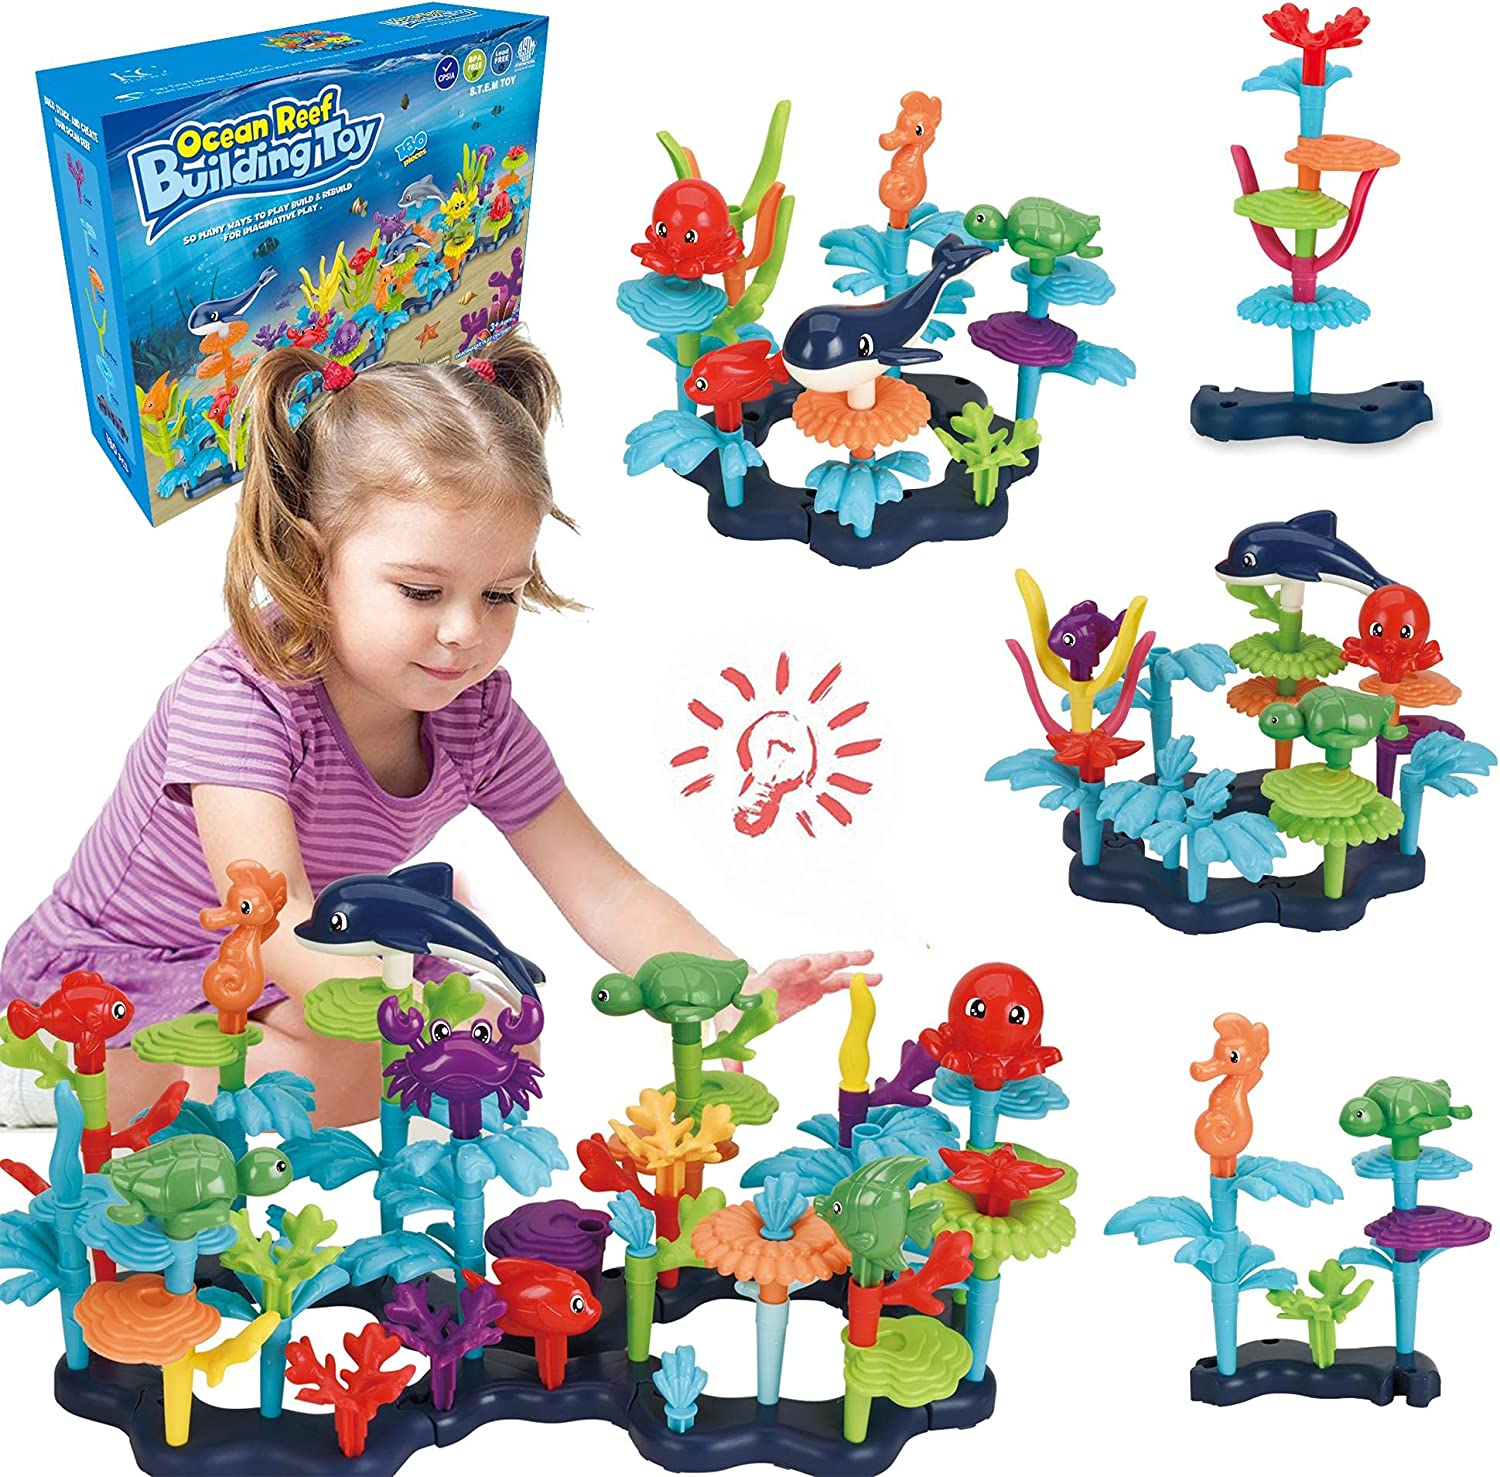 Ocean Reef Building Toy SetforToddlers and Kids Age 3, 4, 5, 6 Year OldBoys and GirlsStacking Reef Garden Building ToySTEM(125 pcs)